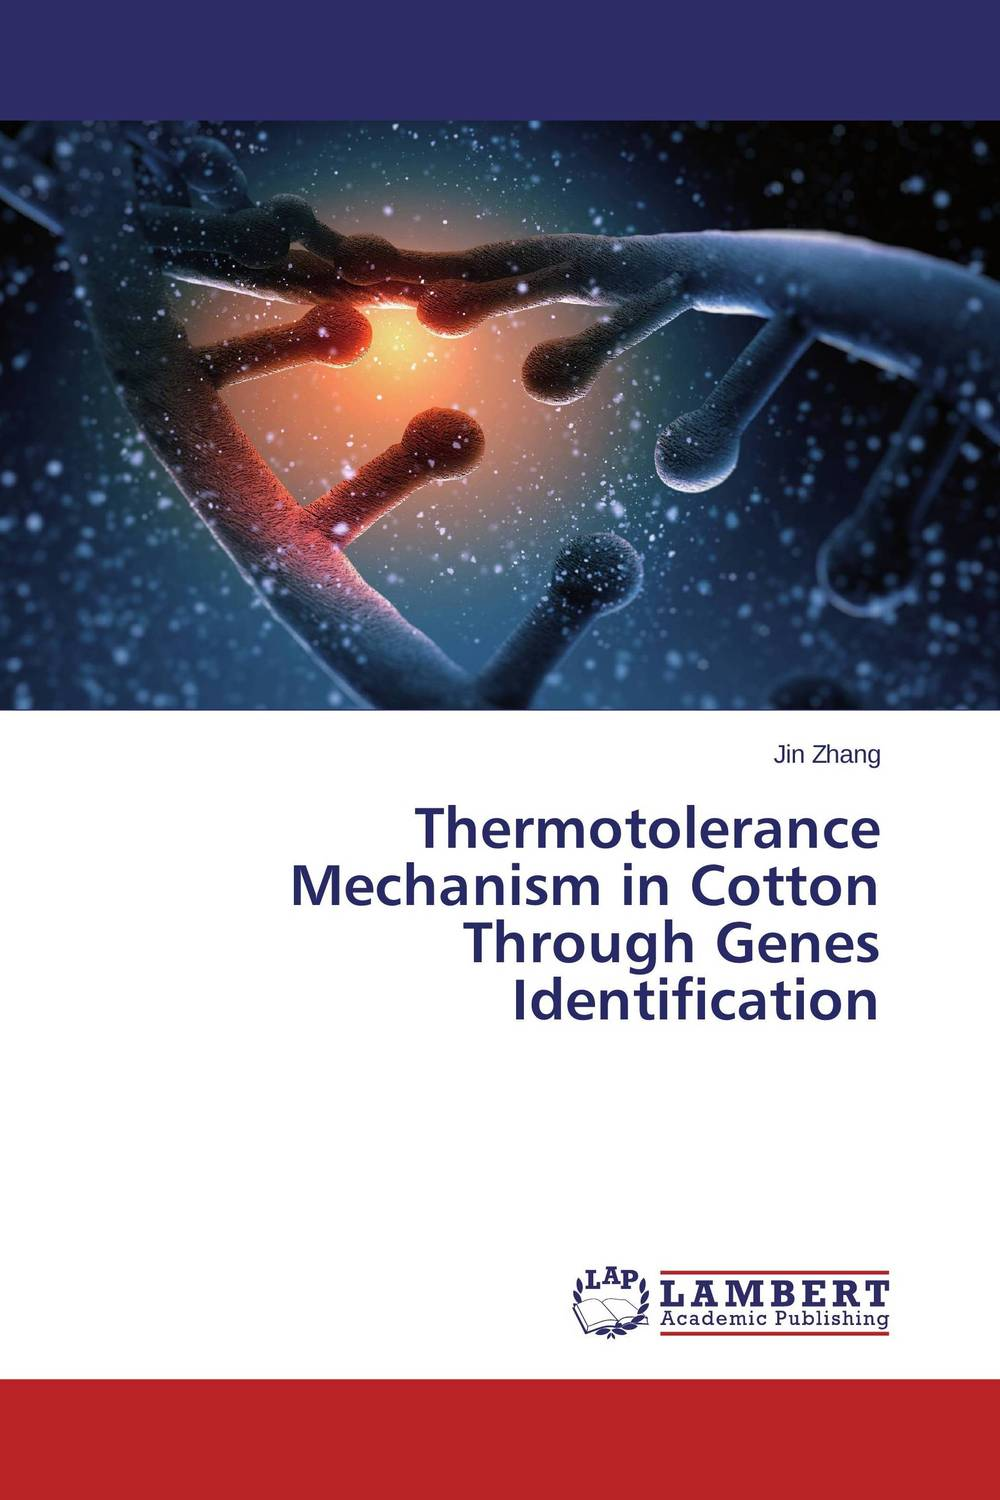 Thermotolerance Mechanism in Cotton Through Genes Identification